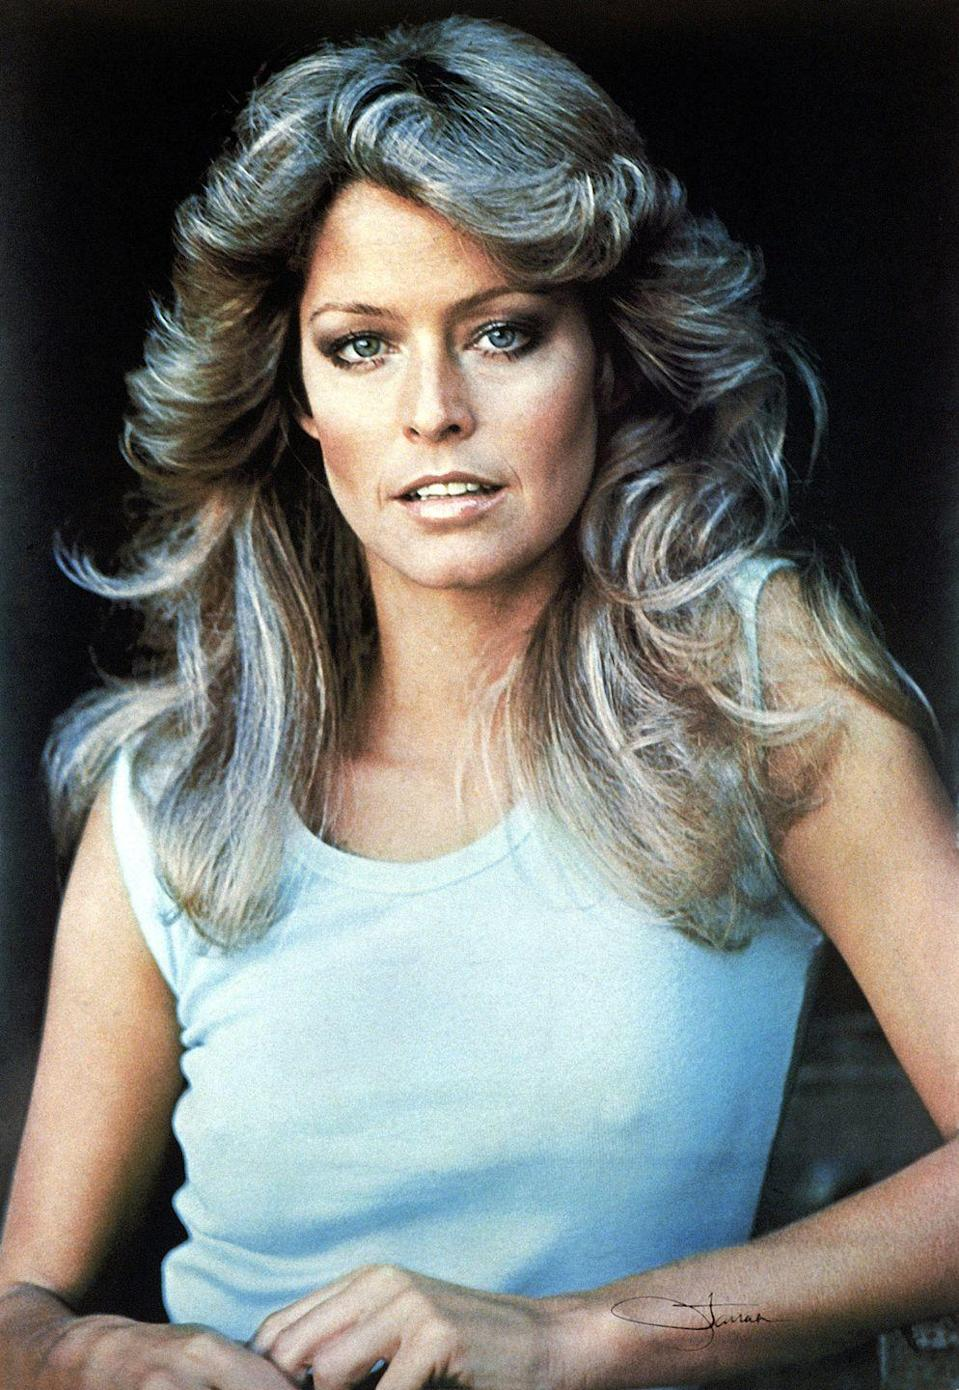 """<p>Farrah Fawcett and her unforgettable hair on <a href=""""http://www.goodhousekeeping.com/beauty/anti-aging/news/a35140/jaclyn-smith-2015/"""" rel=""""nofollow noopener"""" target=""""_blank"""" data-ylk=""""slk:Charlie's Angels"""" class=""""link rapid-noclick-resp"""">Charlie's Angels</a> inspired countless women to highlight their hair and blow it out into full, sweeping waves.</p>"""